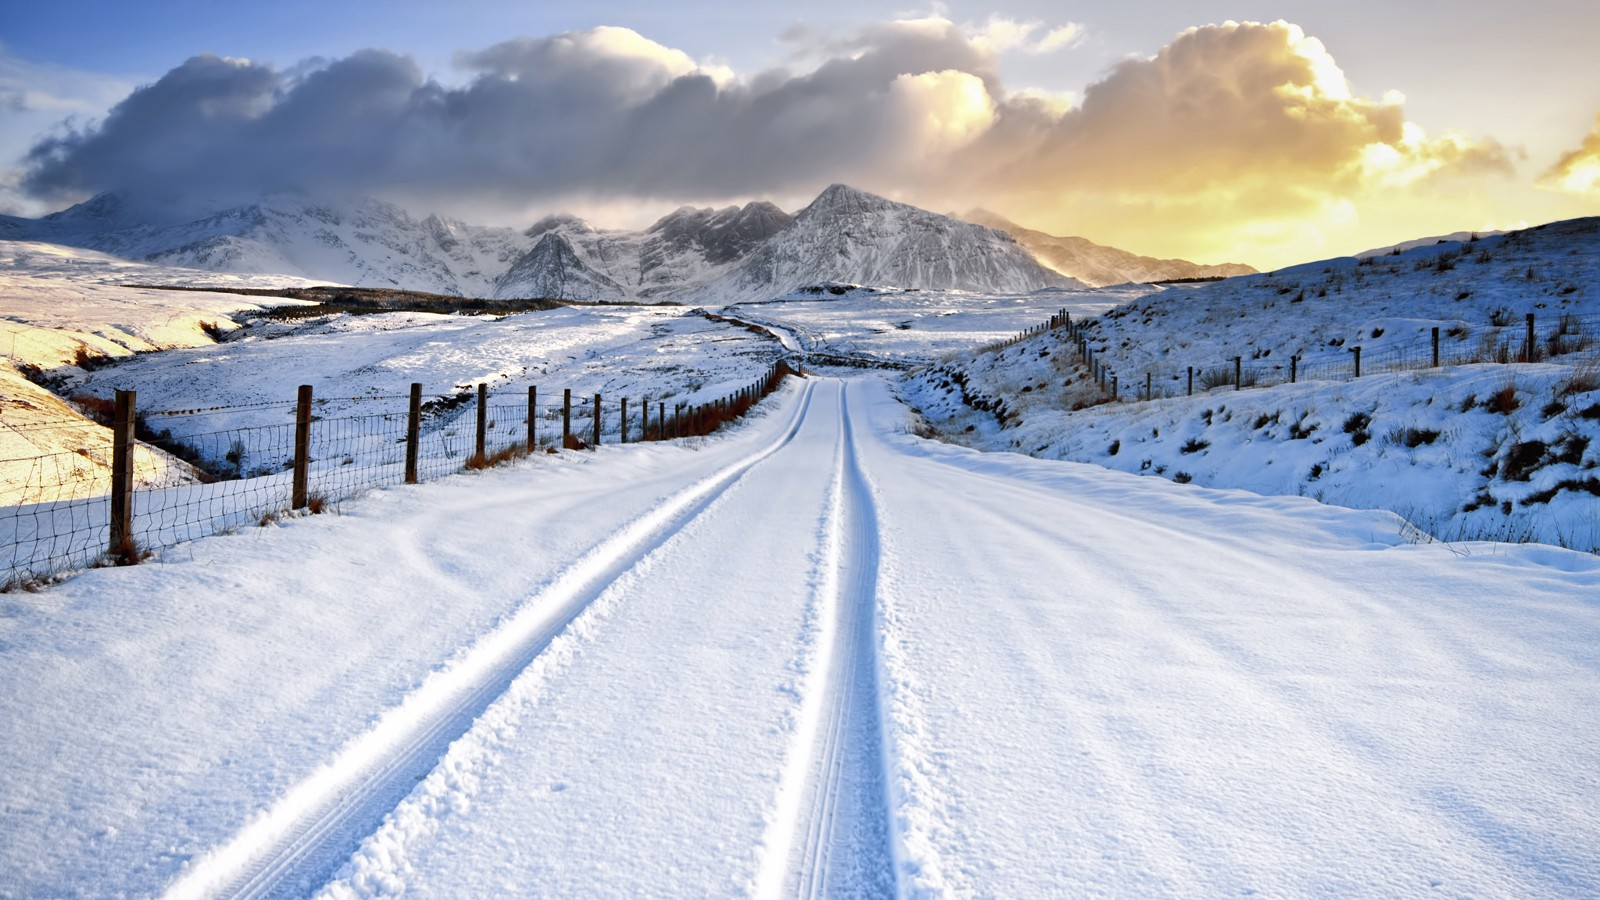 Snowy mountains, Isle of Skye, Scotland